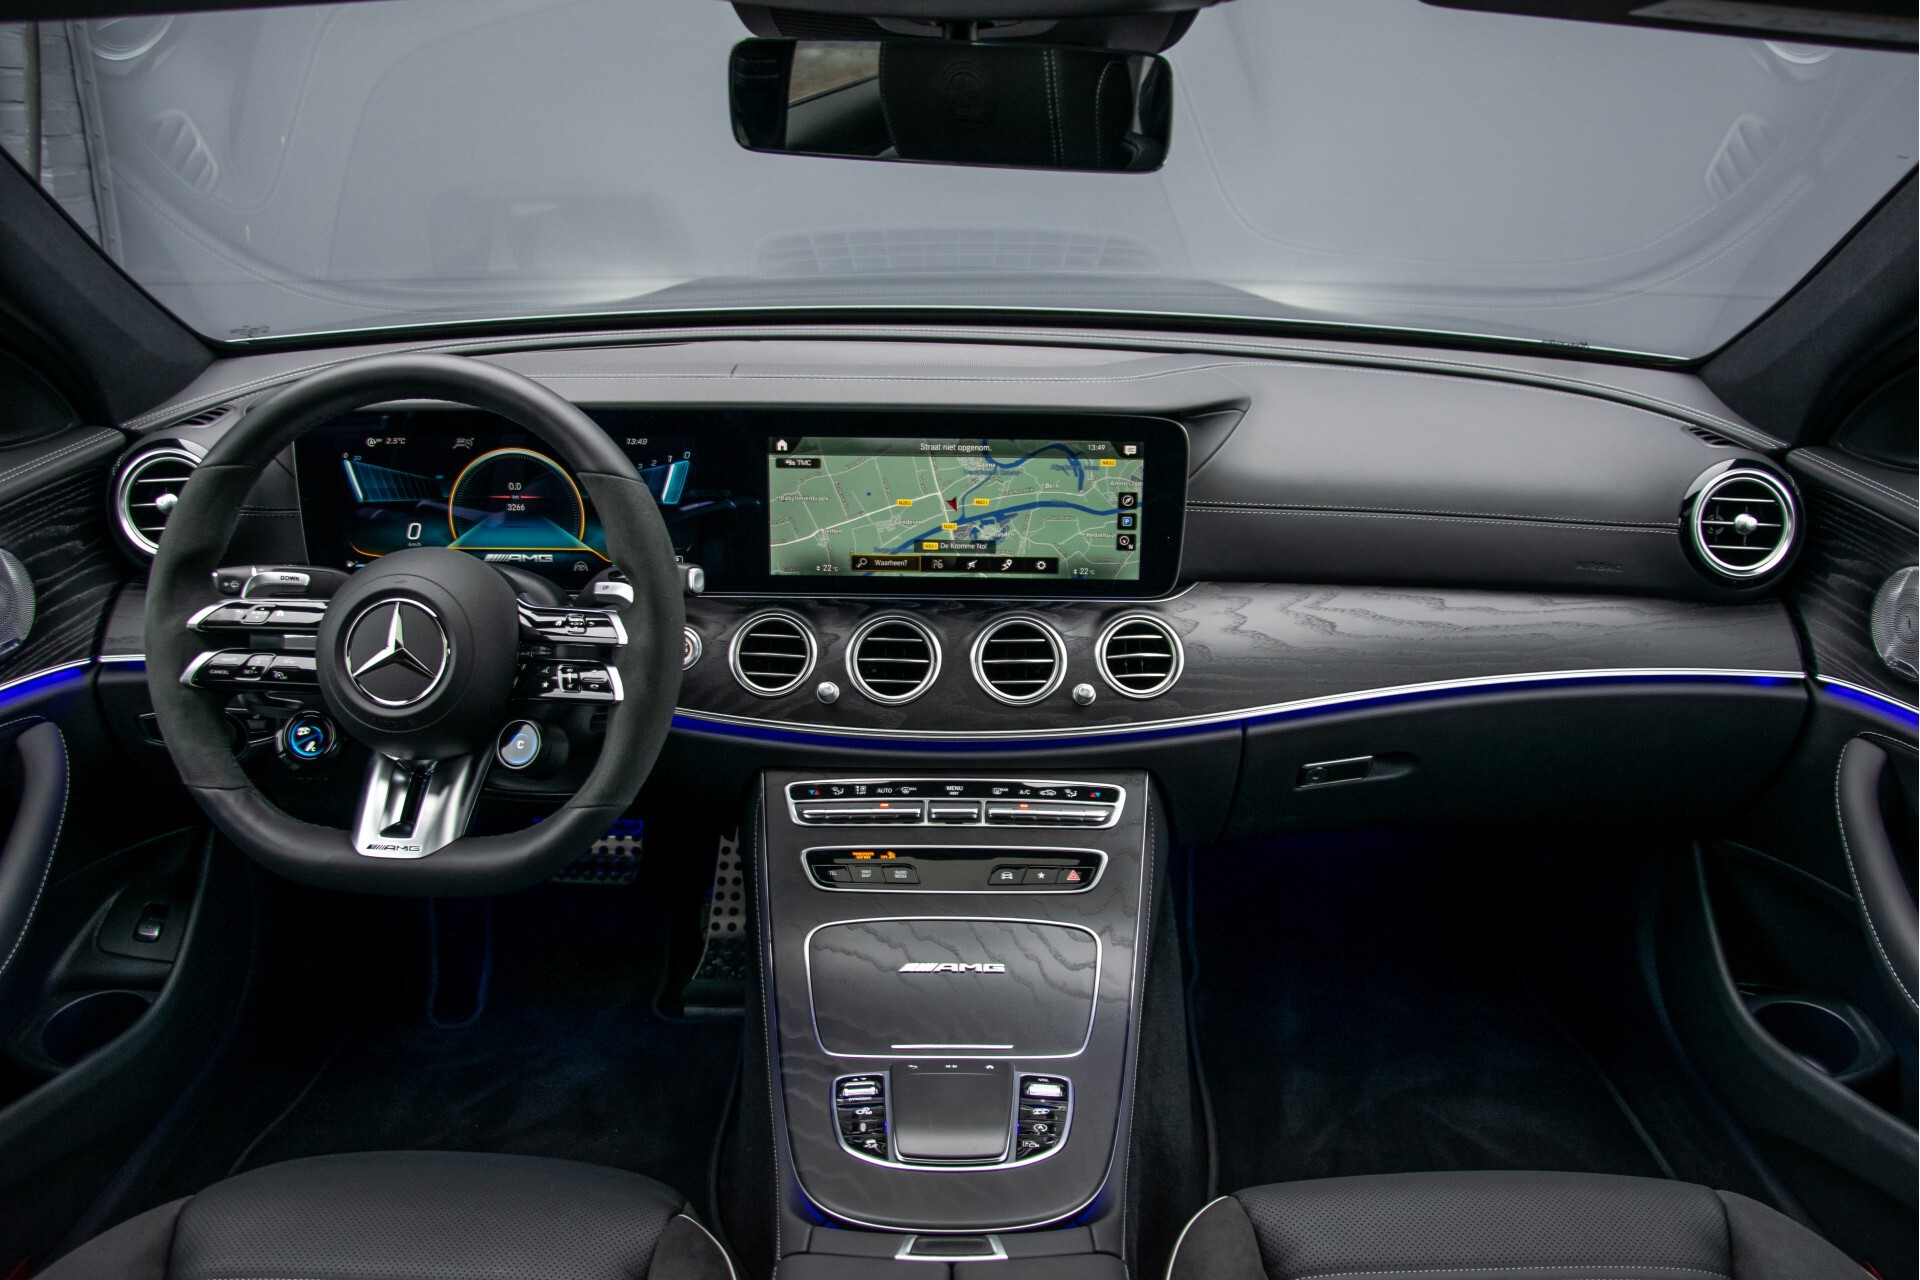 Mercedes-Benz E-Klasse 63 S AMG 4M+ NIEUW MODEL Night/Massage/Rij-assist/Keyless/Hud Aut9 Foto 7